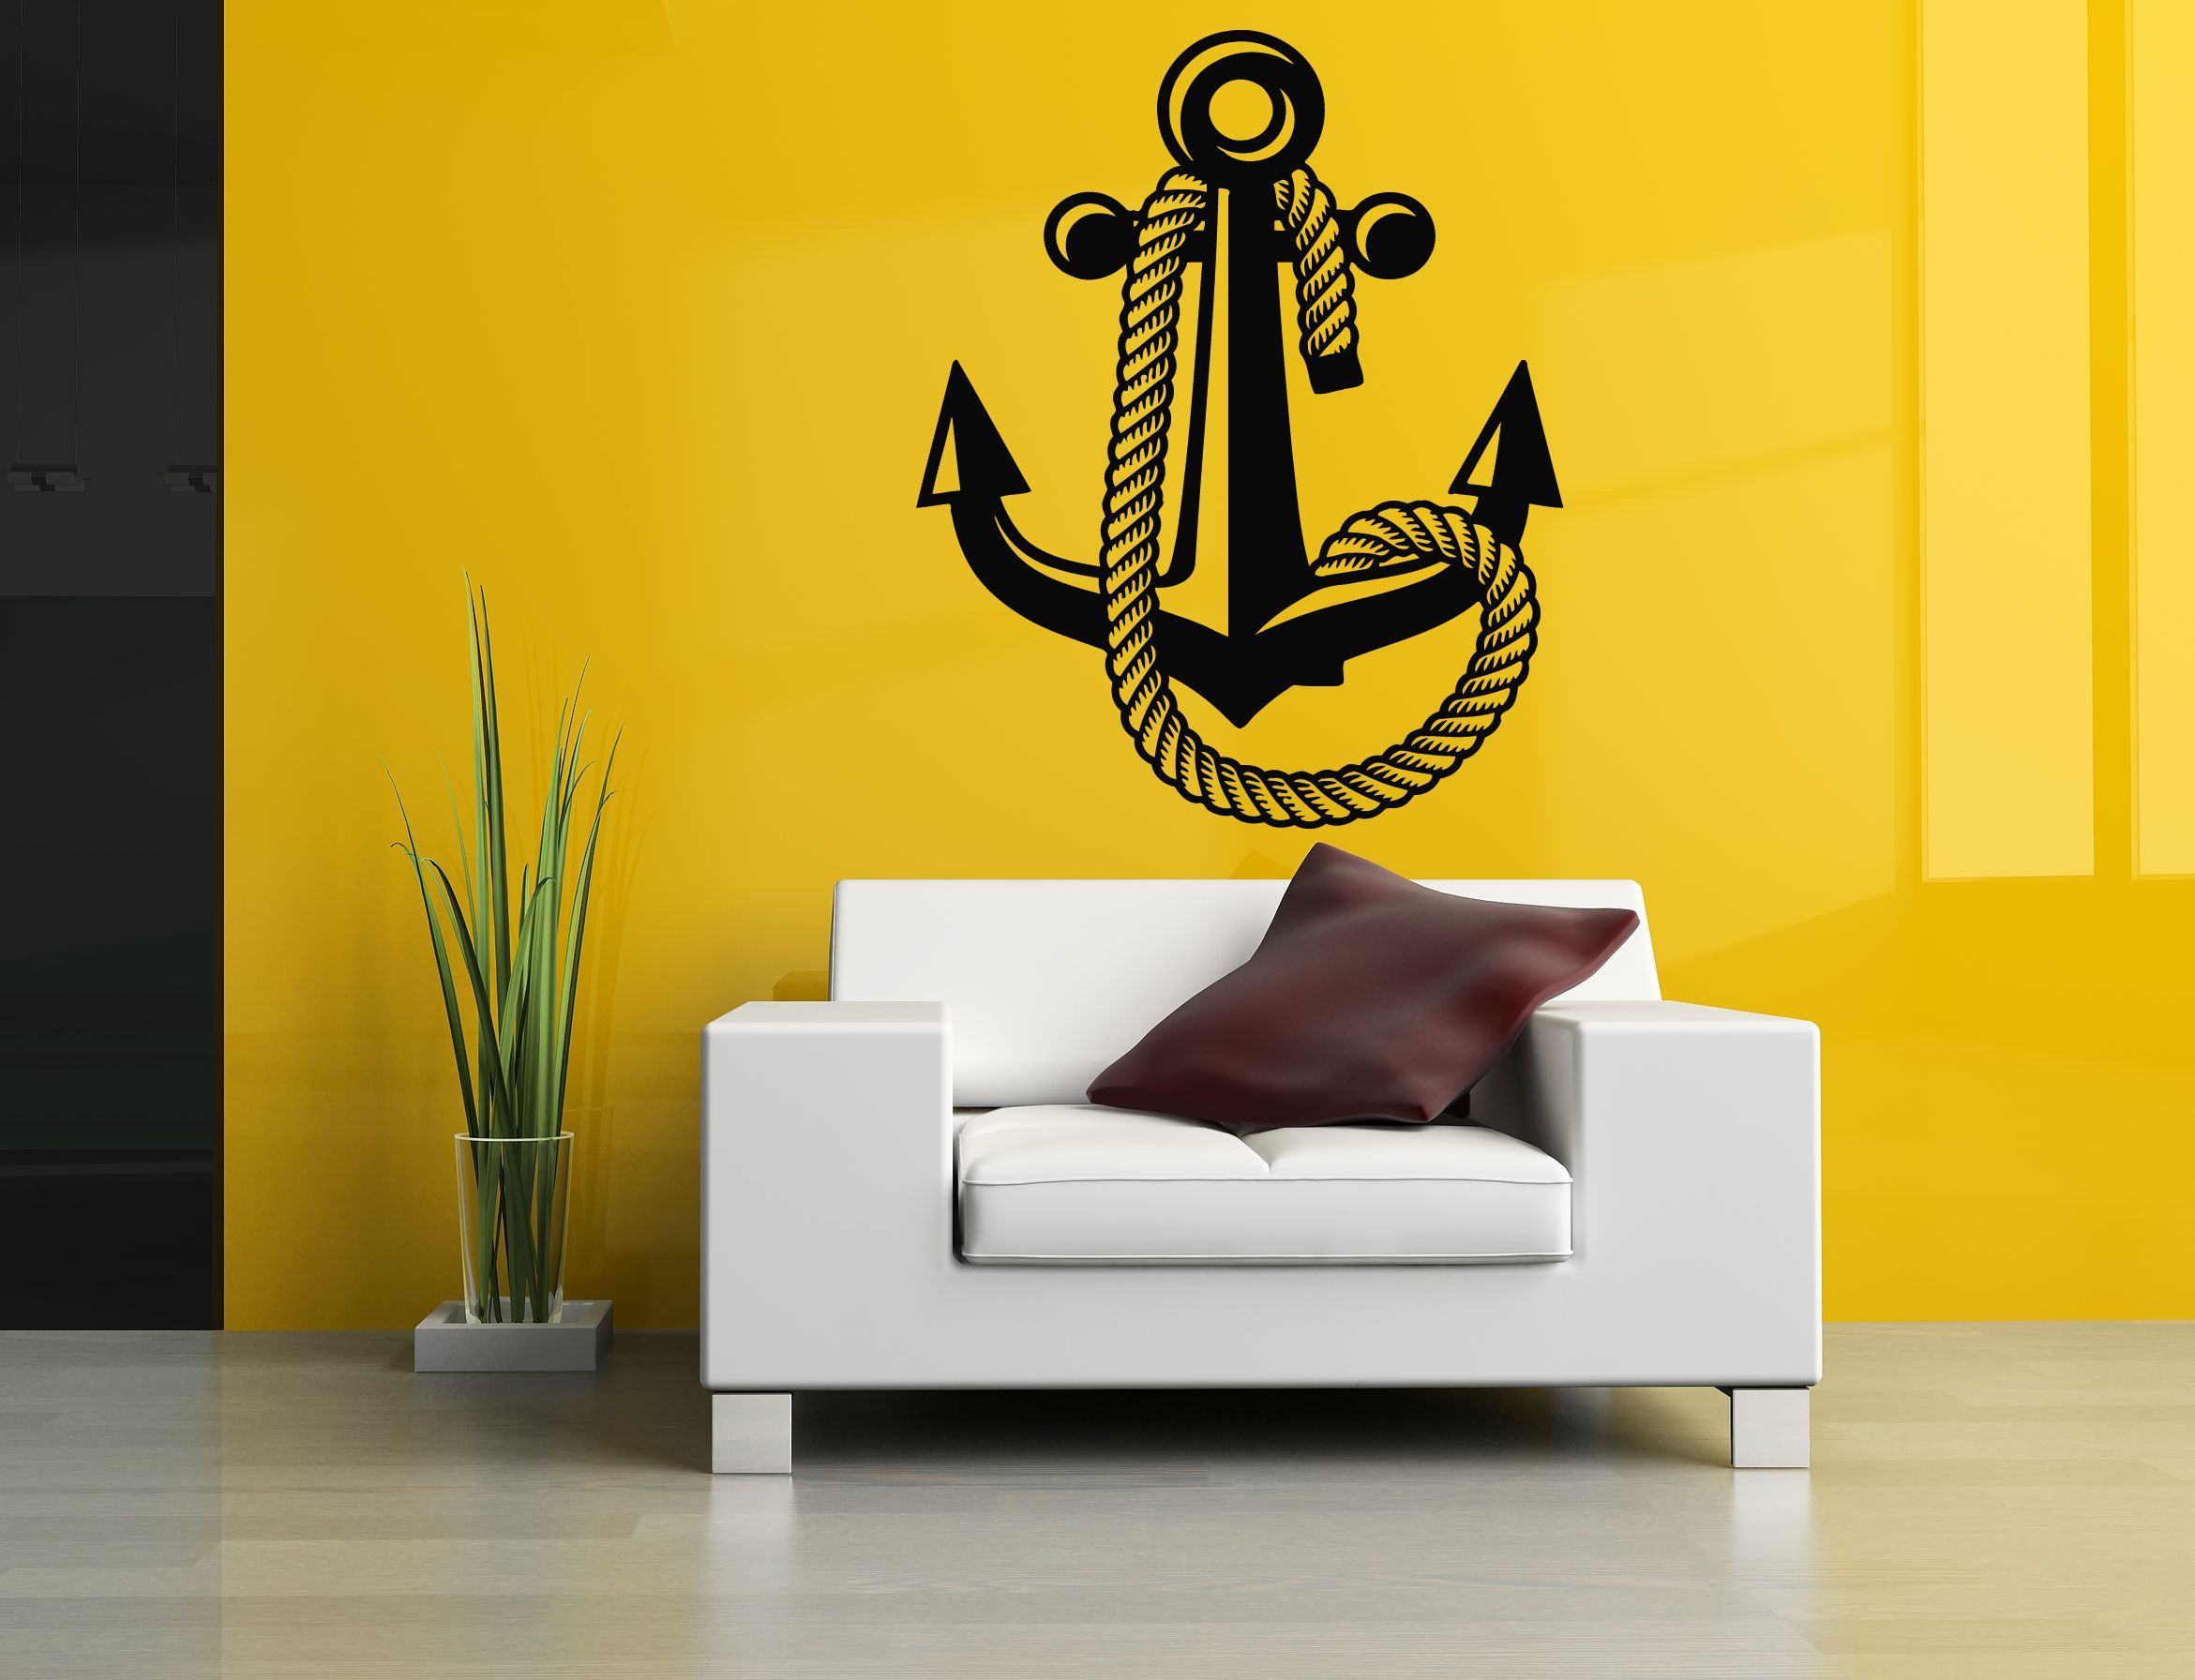 Wall Room Decor Art Vinyl Sticker Mural Decal Navy Naval Sea Ocean ...